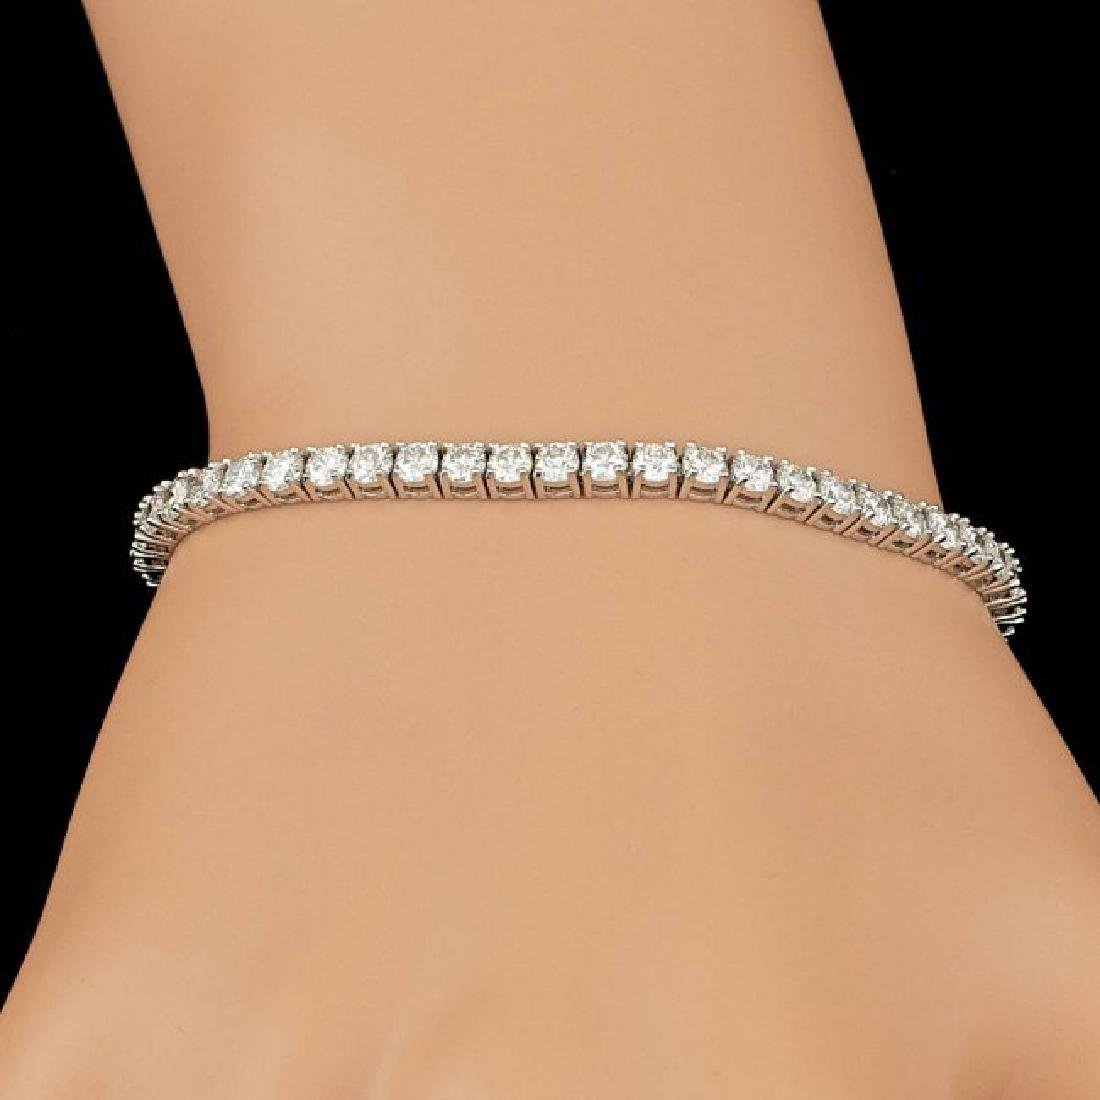 18k White Gold 6.00ct Diamond Bracelet - 4